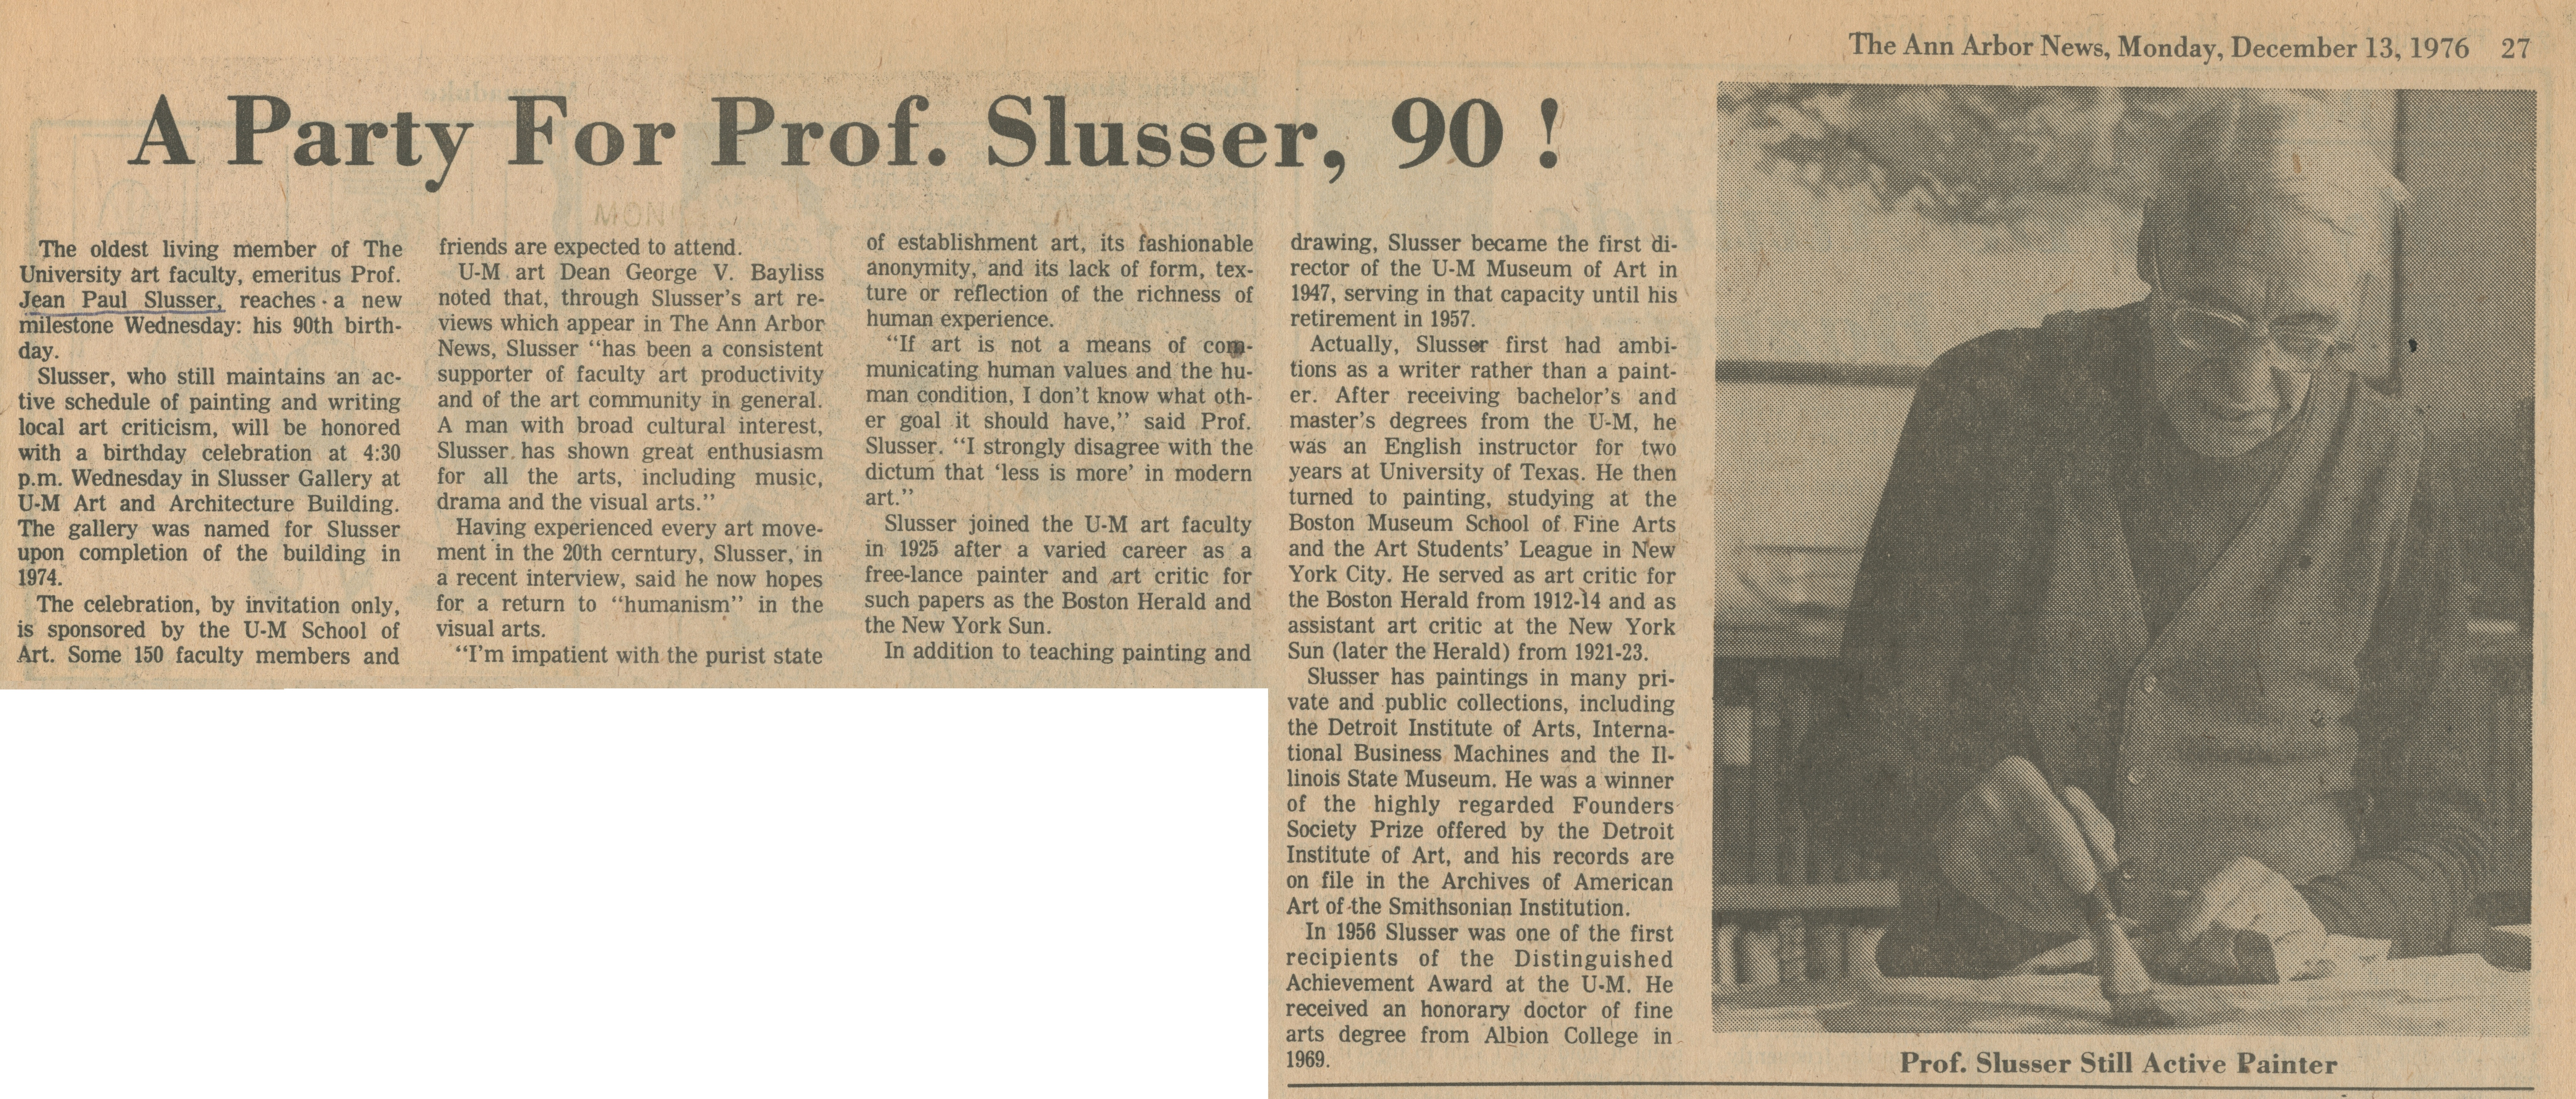 A Party For Prof. Slusser, 90! image